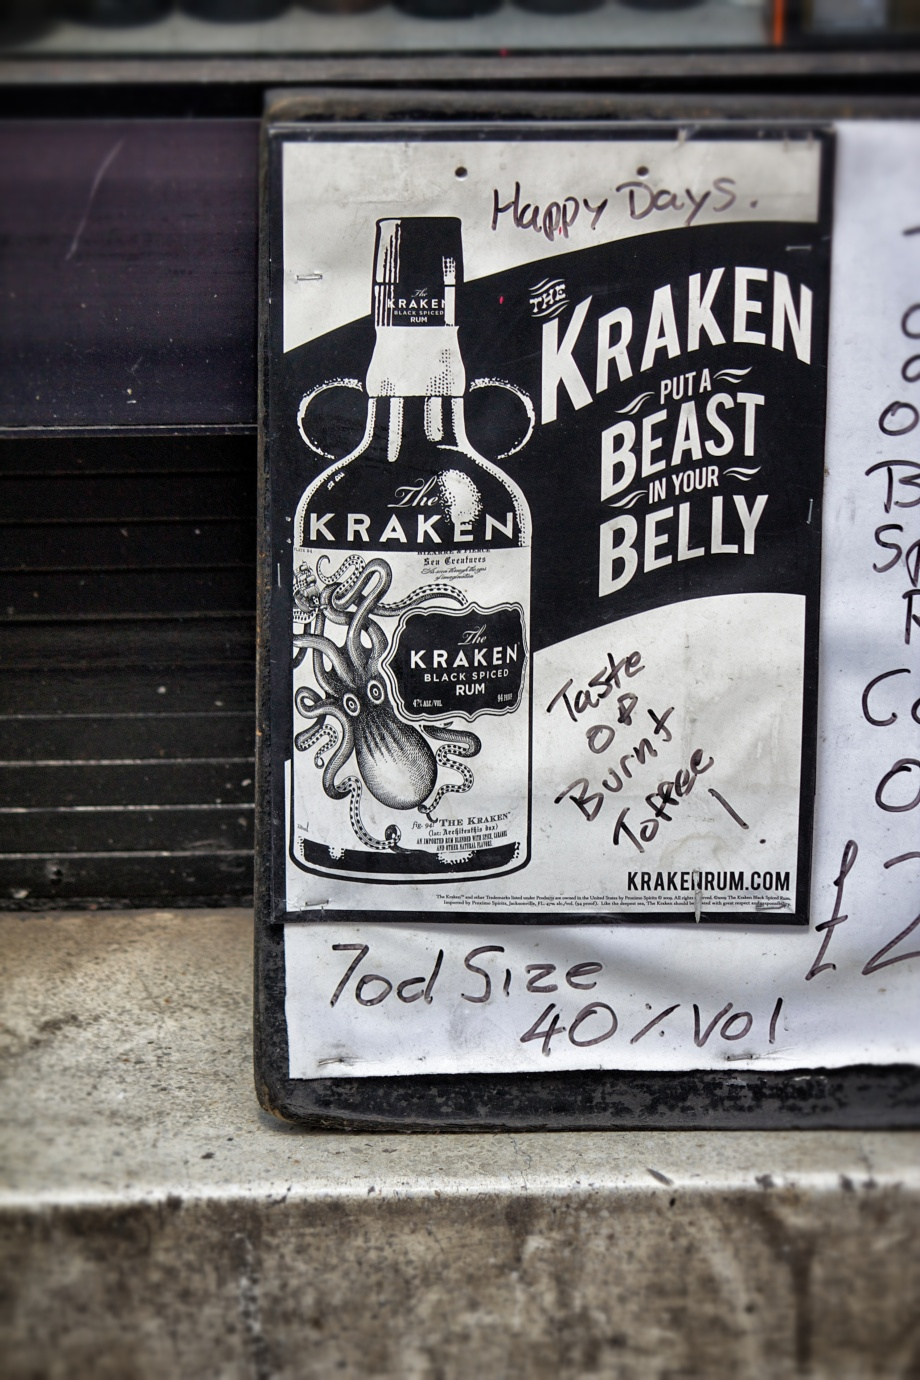 kraken put a beast in your belly